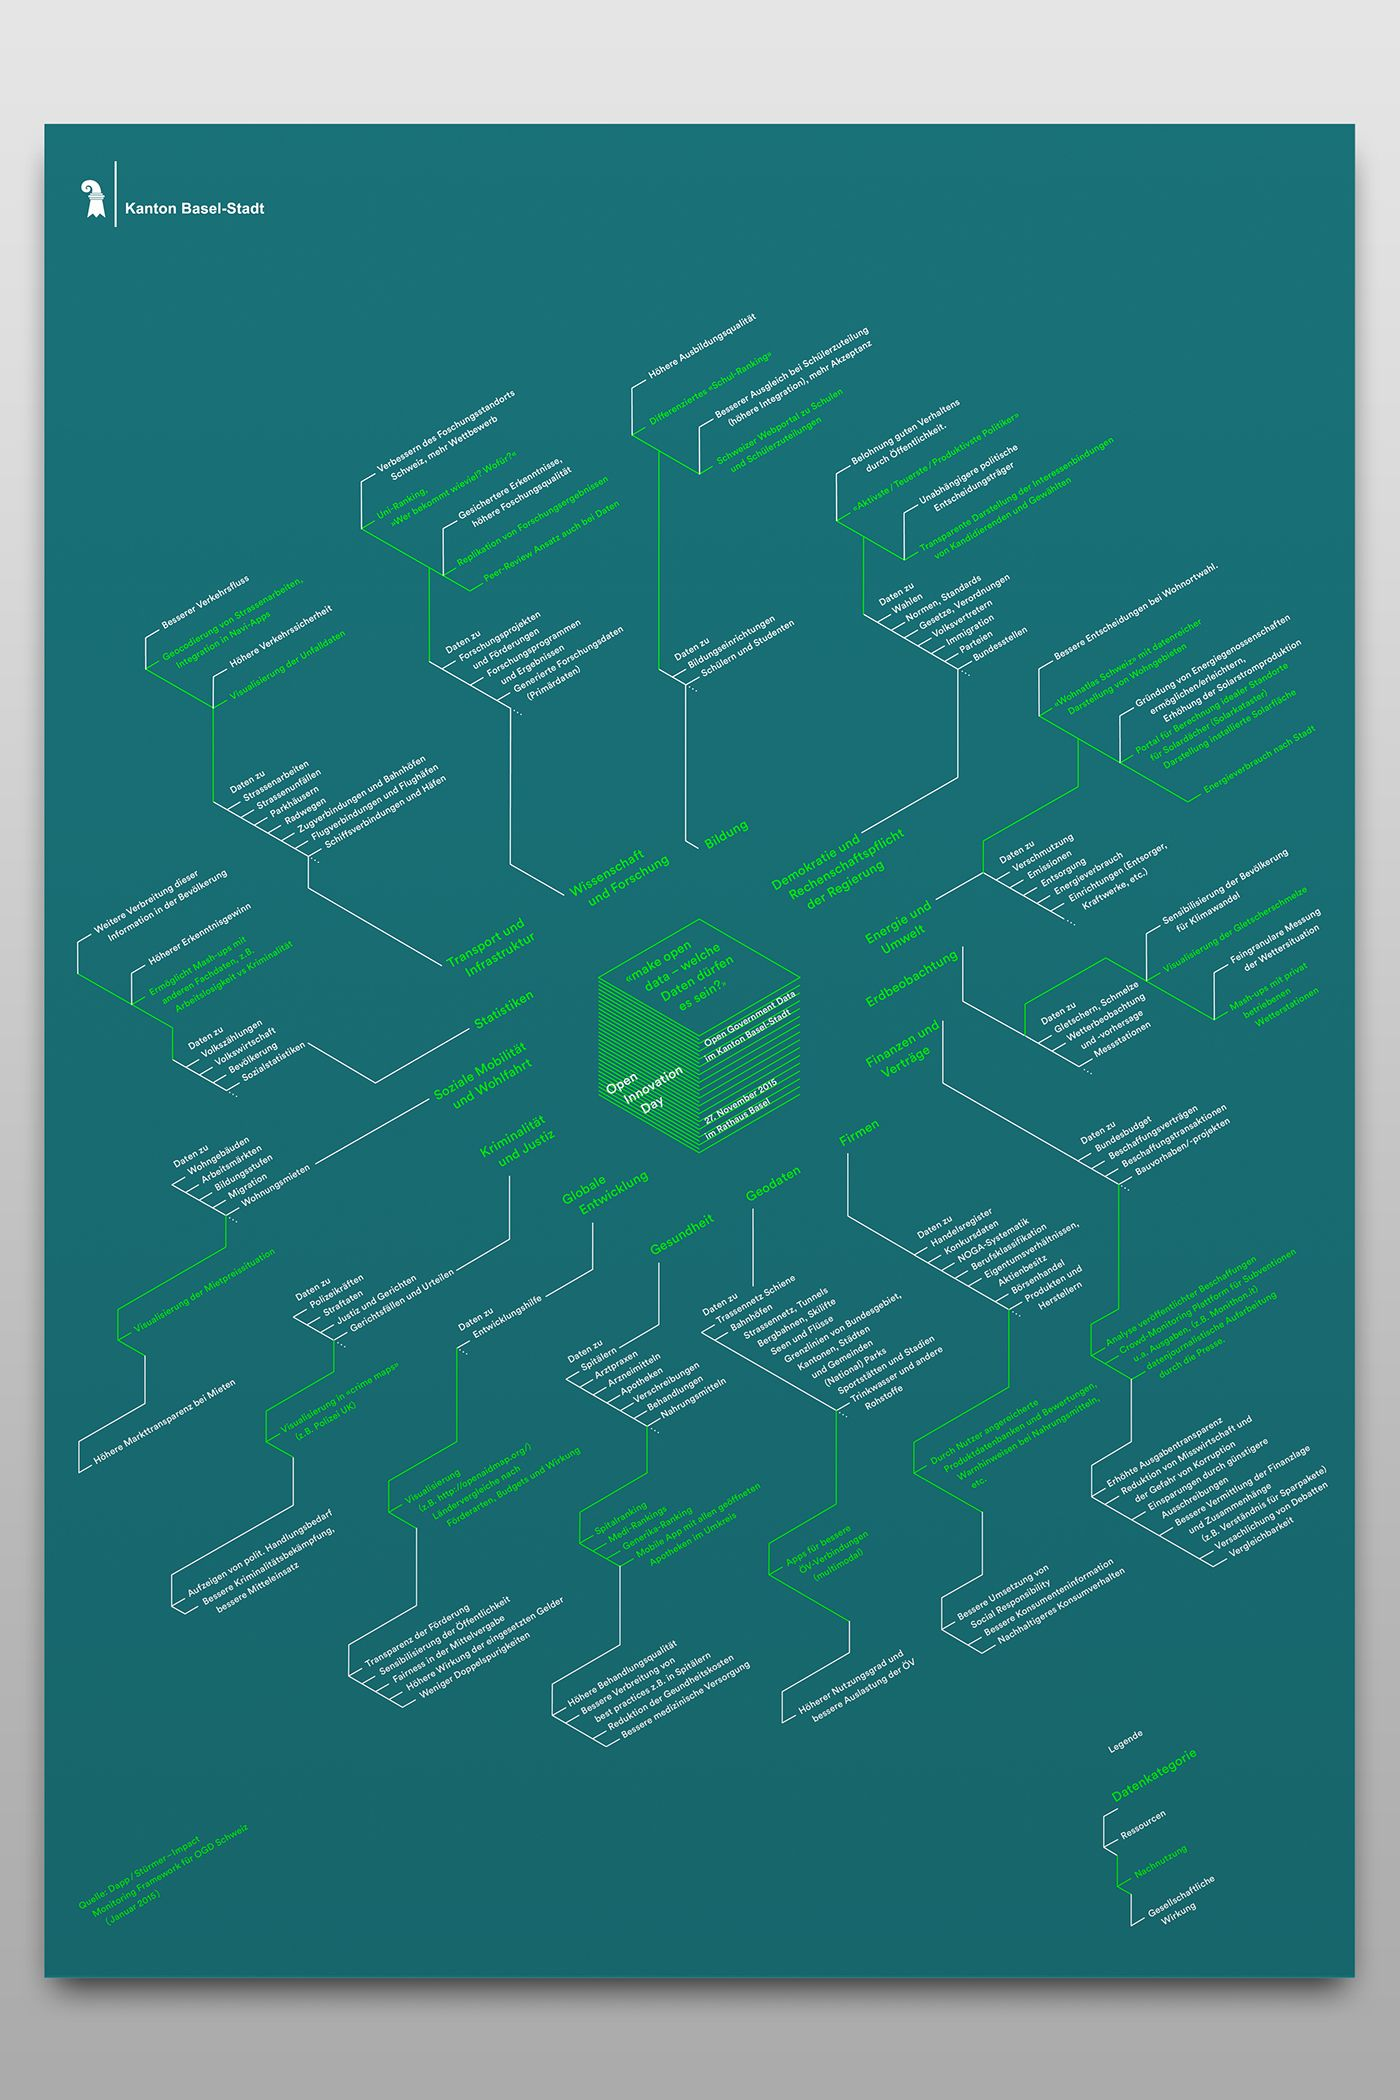 yaay created a radial tree visualization as a2 poster the poster provides information about the event also underlines the discussion topics  [ 1400 x 2100 Pixel ]